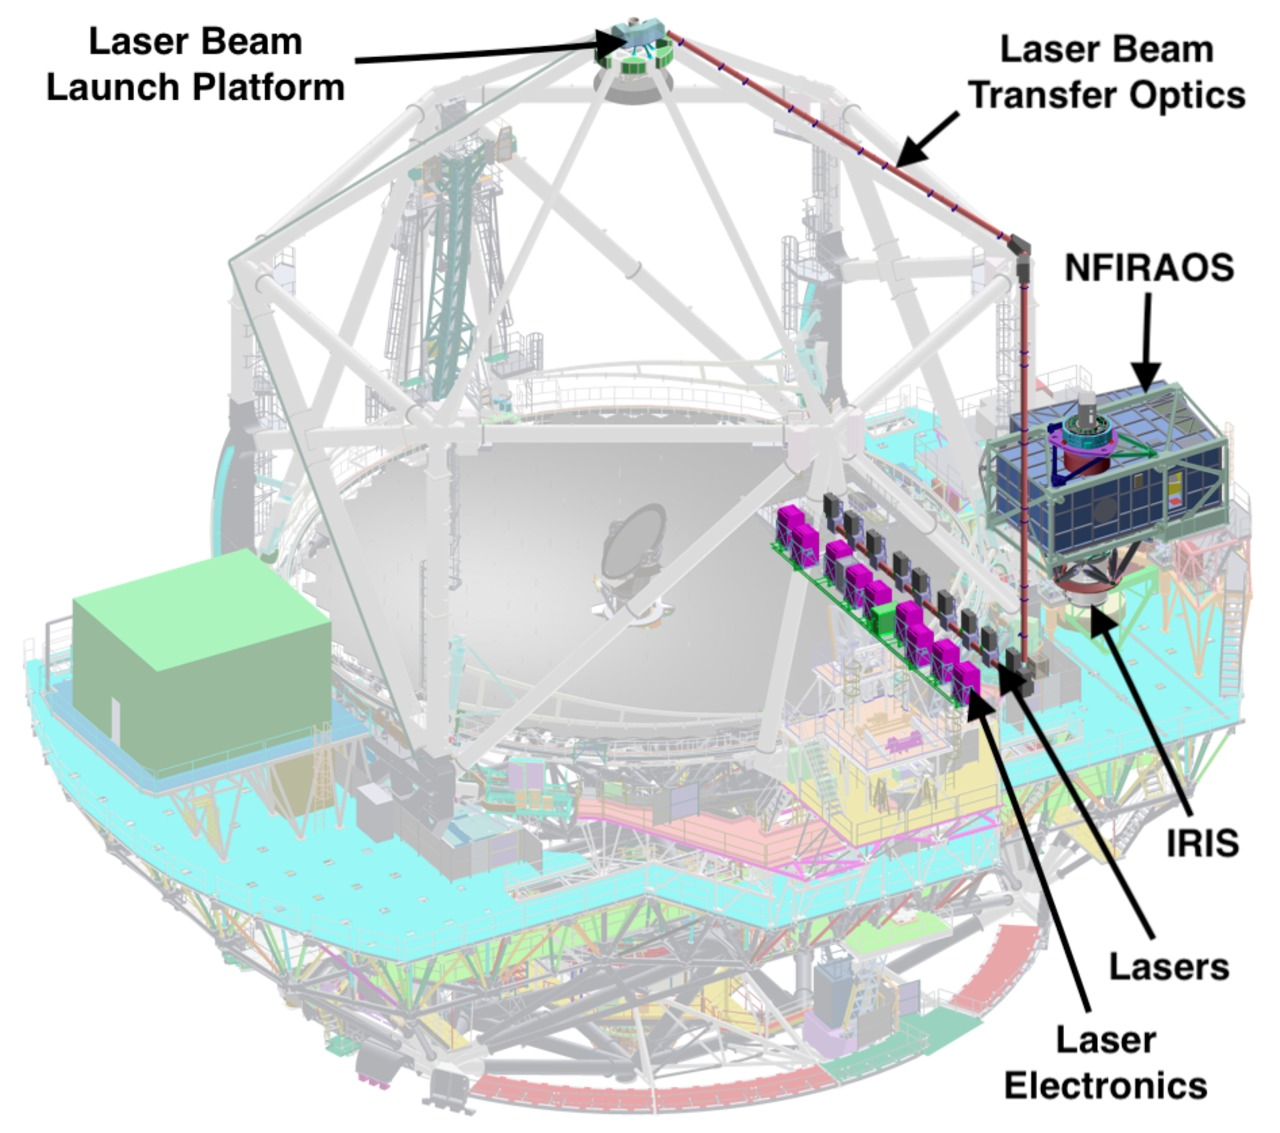 The TMT telescope with NFIRAOS and the IRIS science instrument. Credit: TMT International Observatory